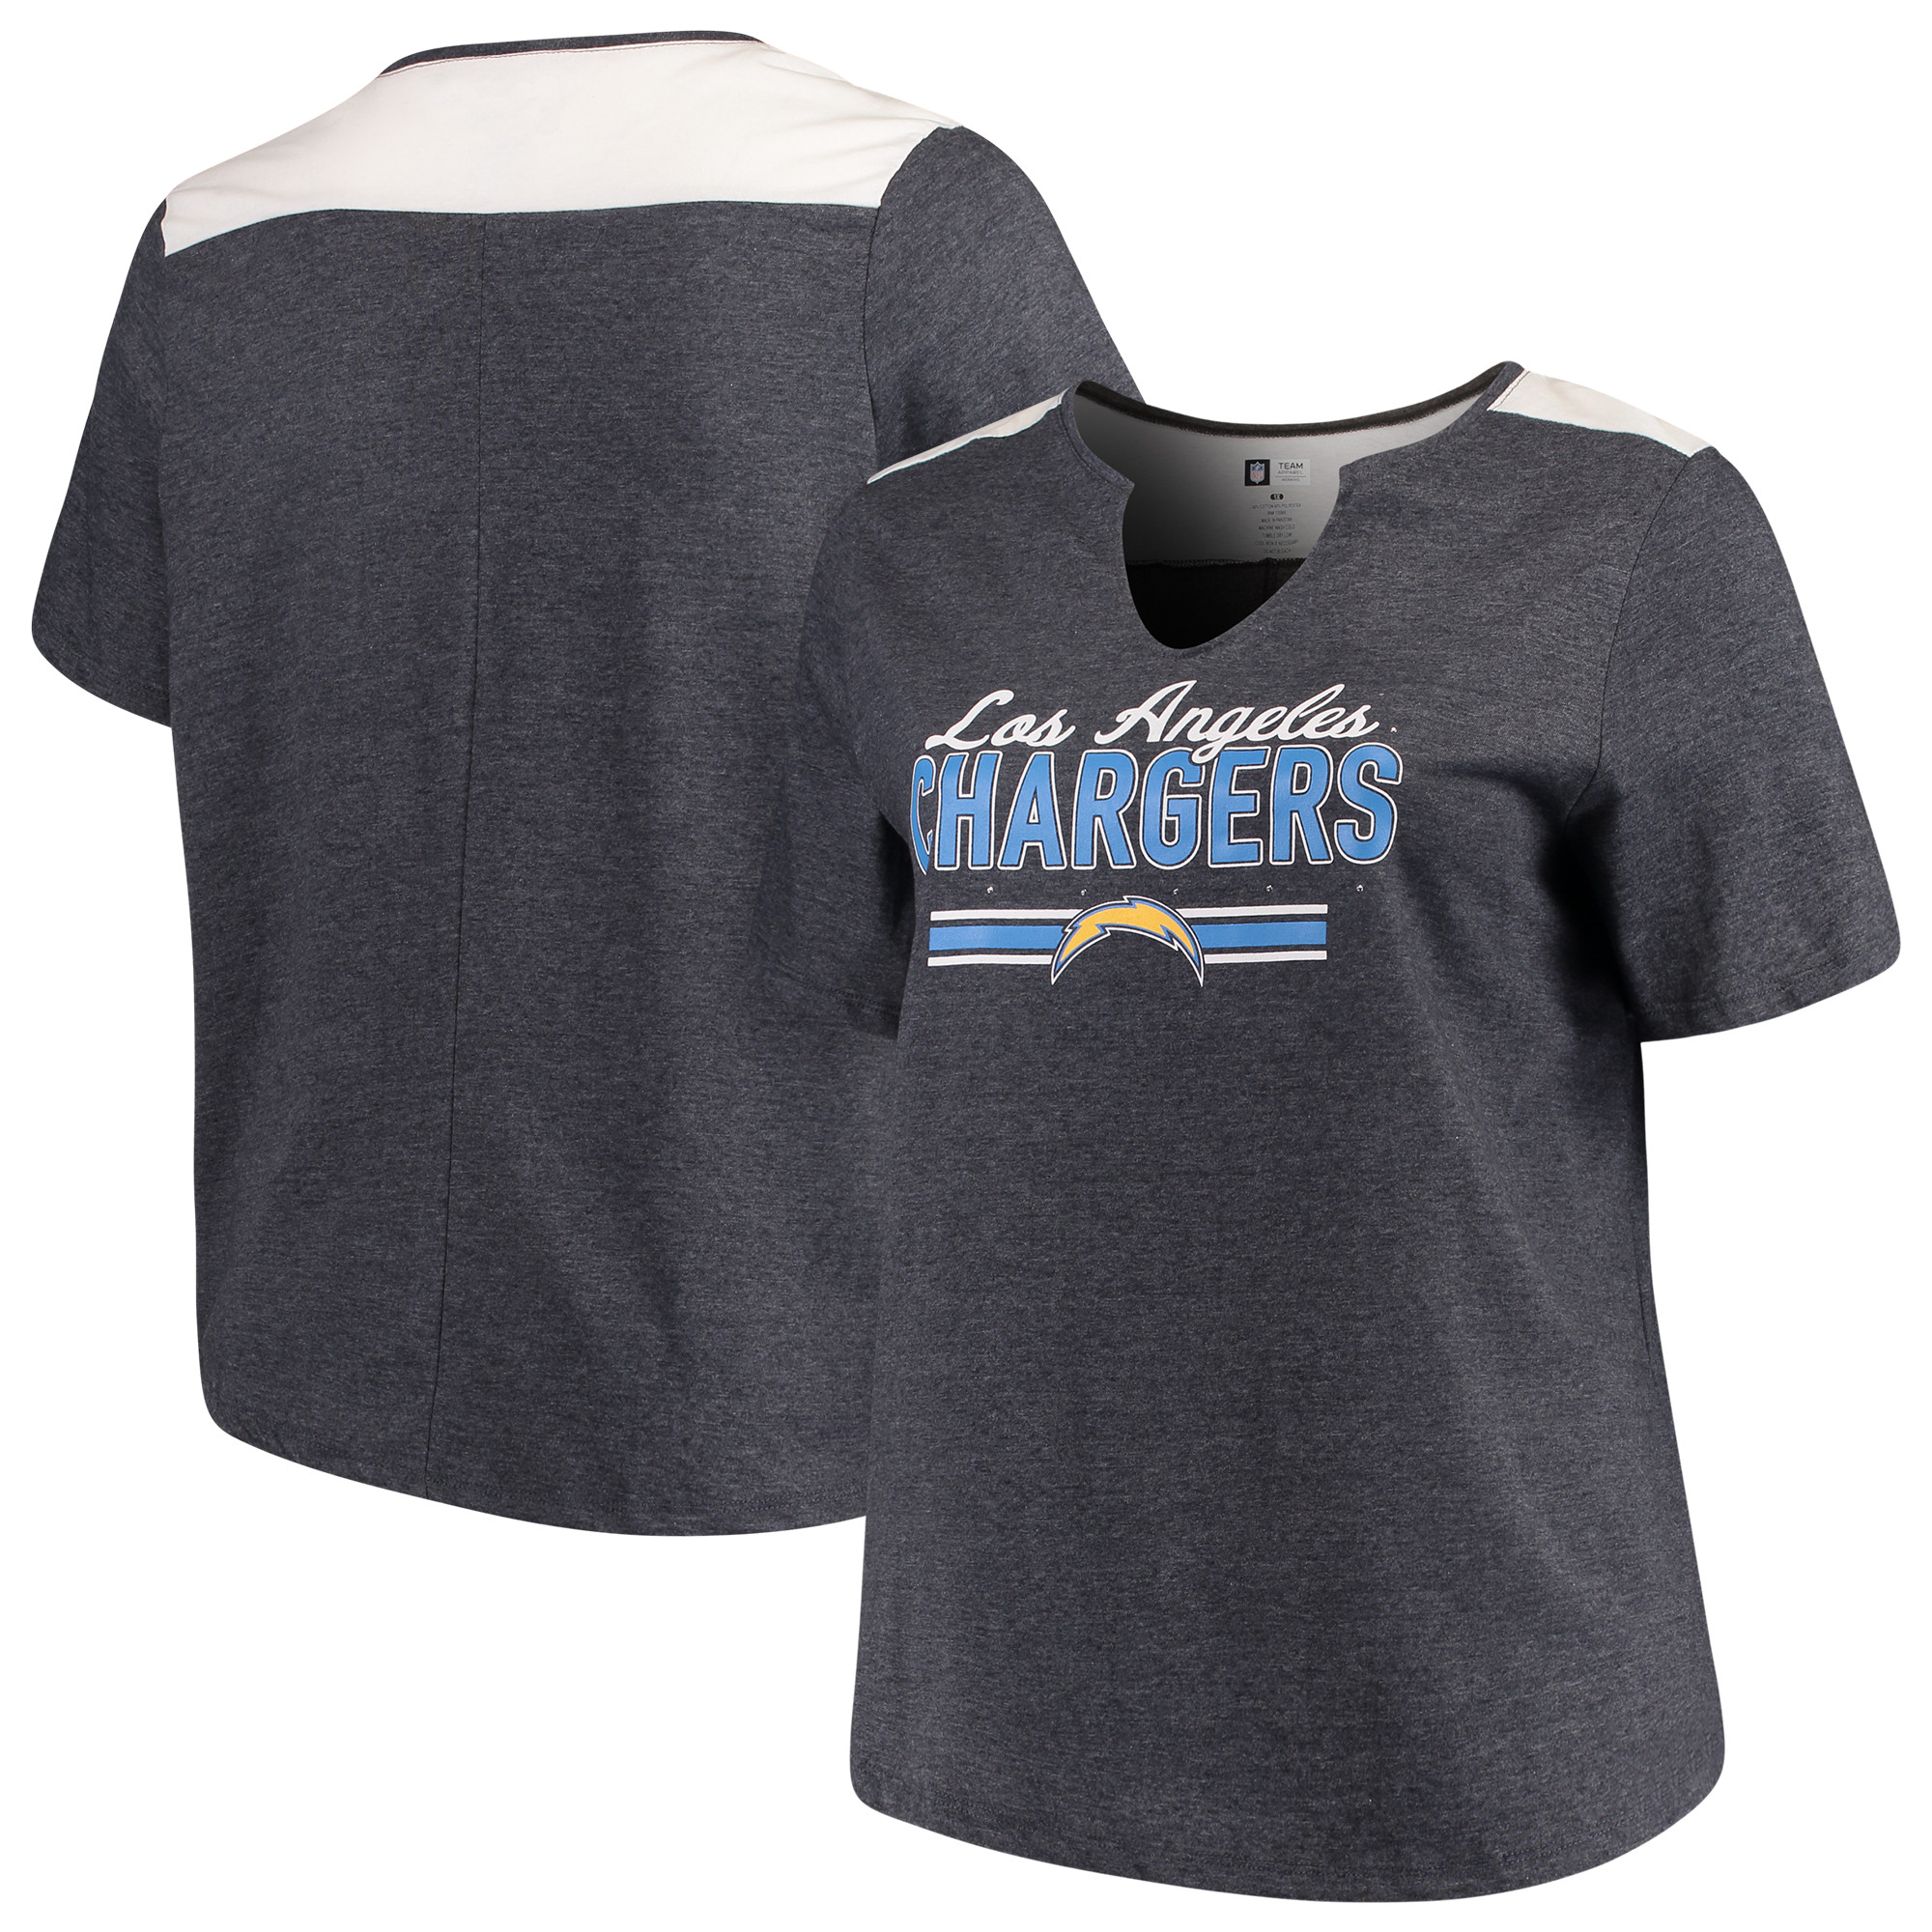 Los Angeles Chargers Majestic Women's Notch Neck Plus Size T-Shirt - Heathered Navy